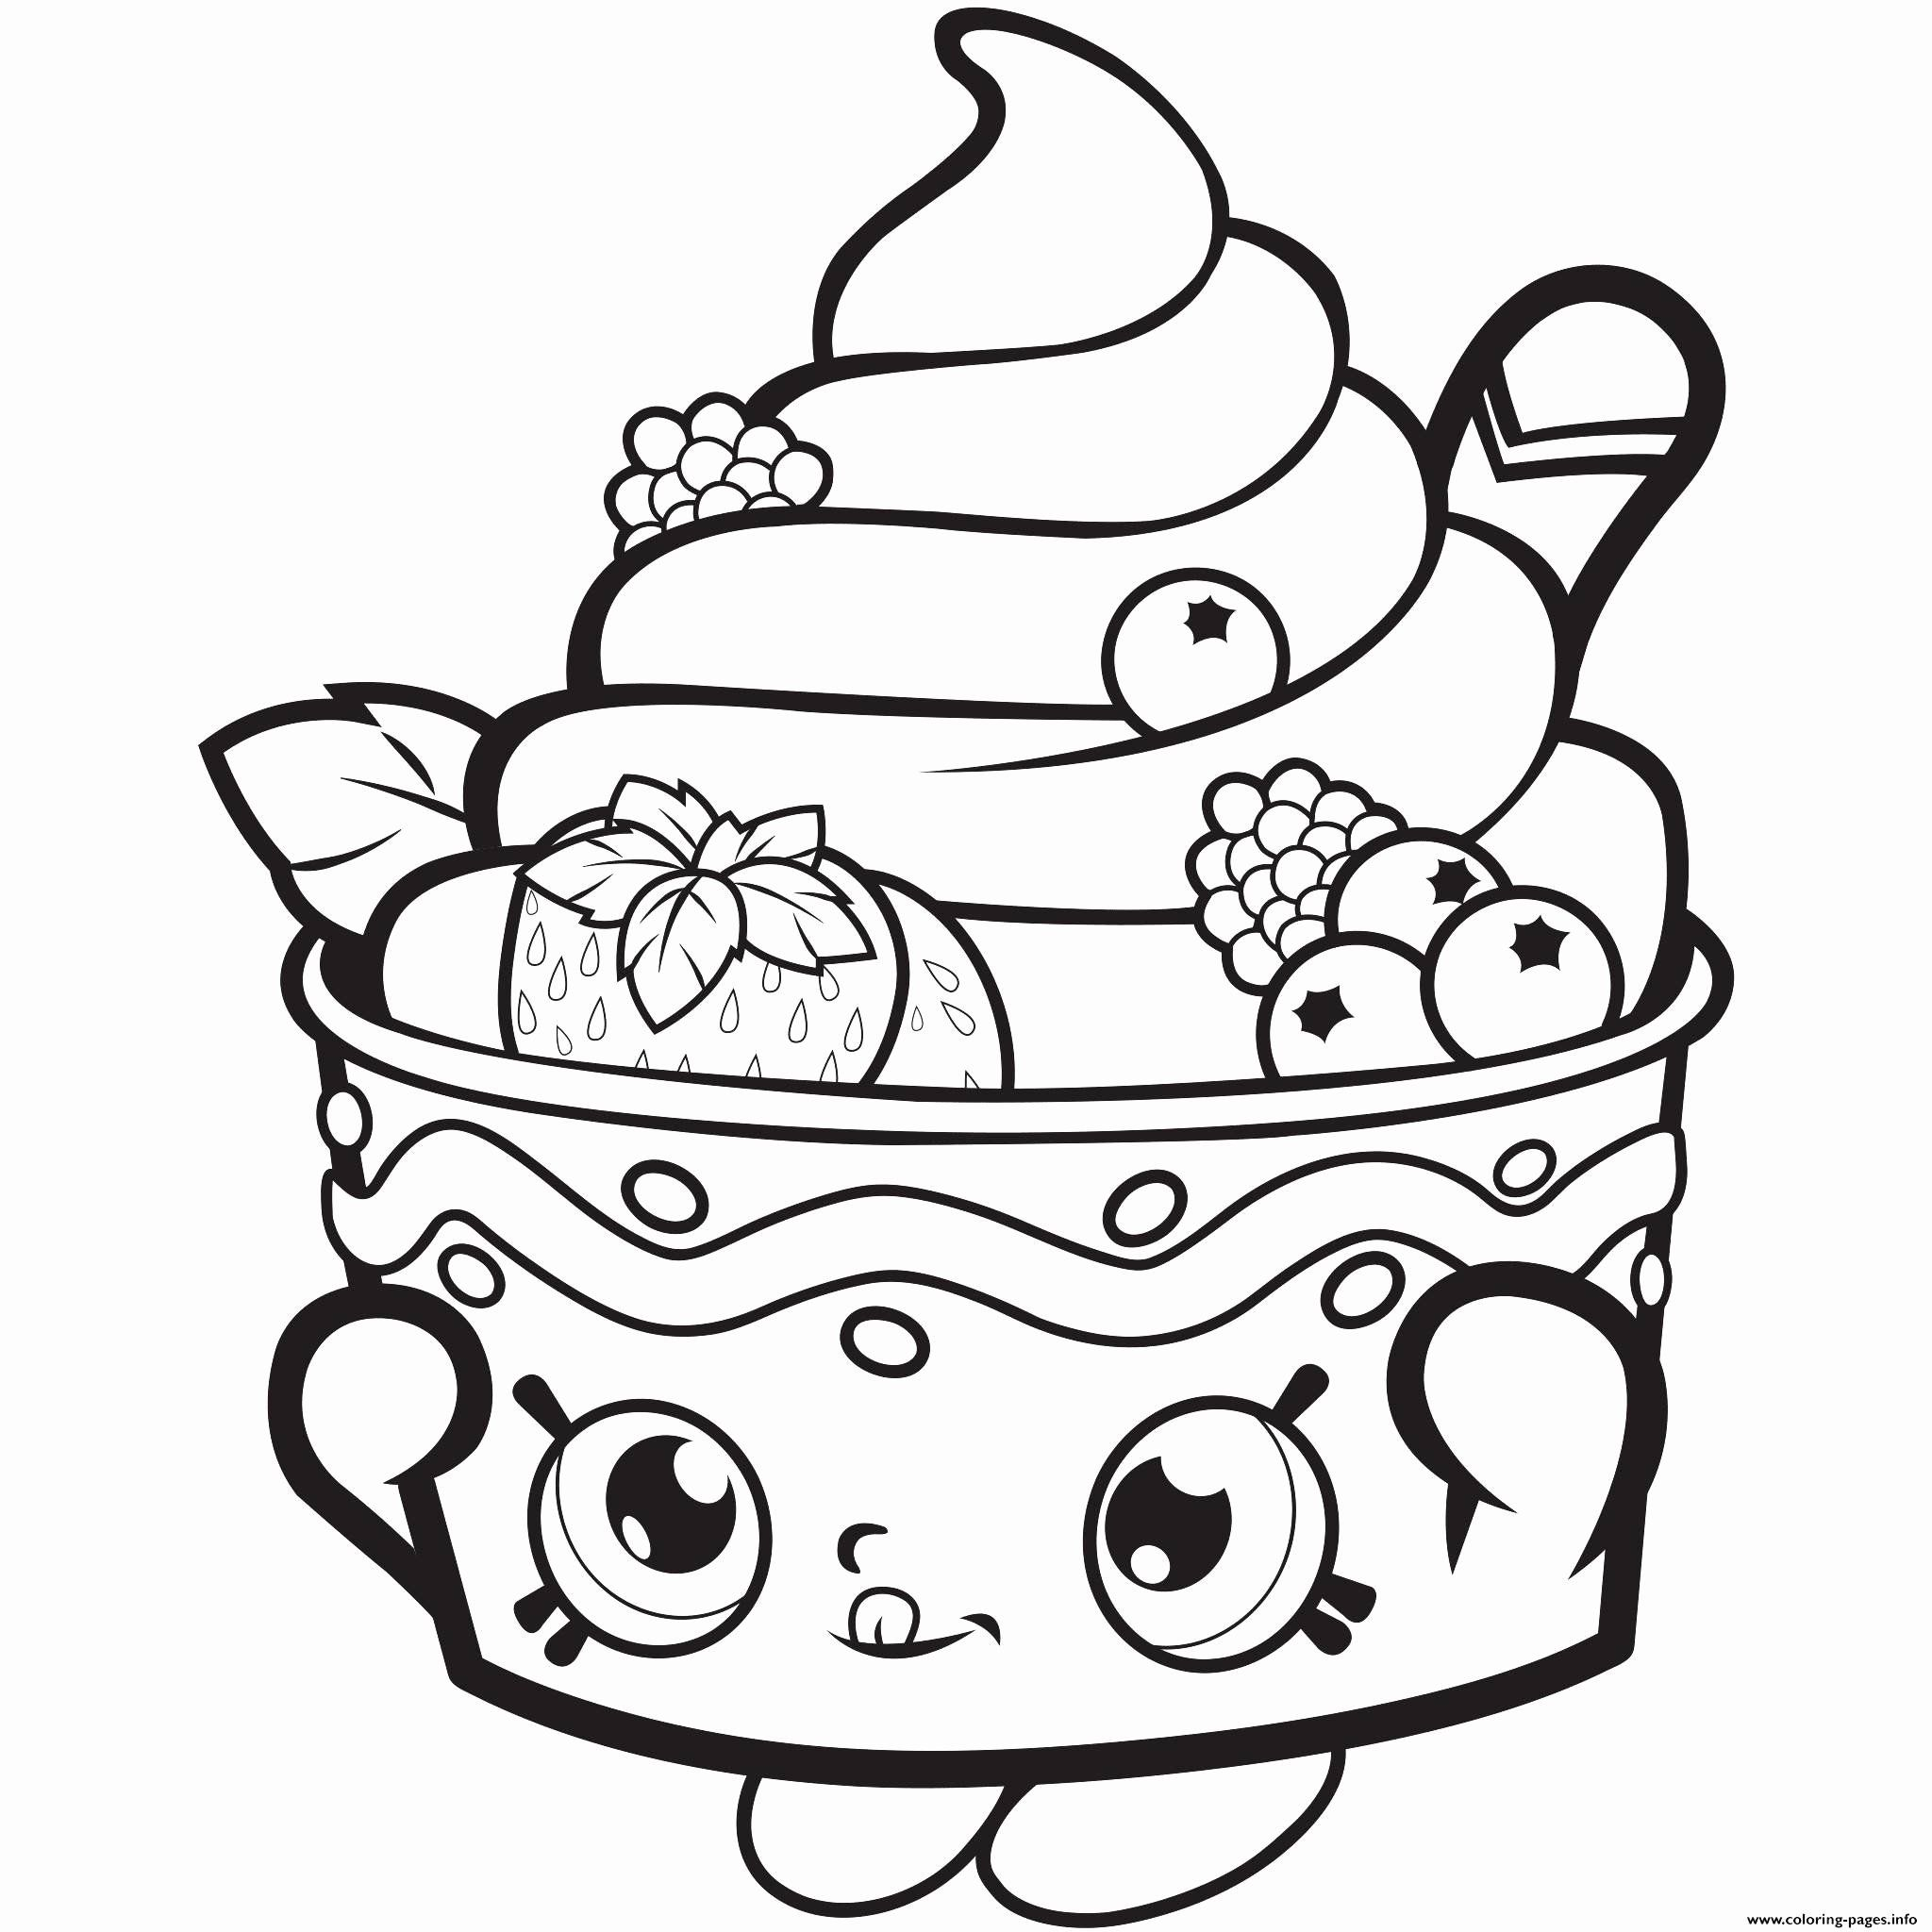 Cake Coloring Pages For Adults Best Of Shopkin Coloring Page